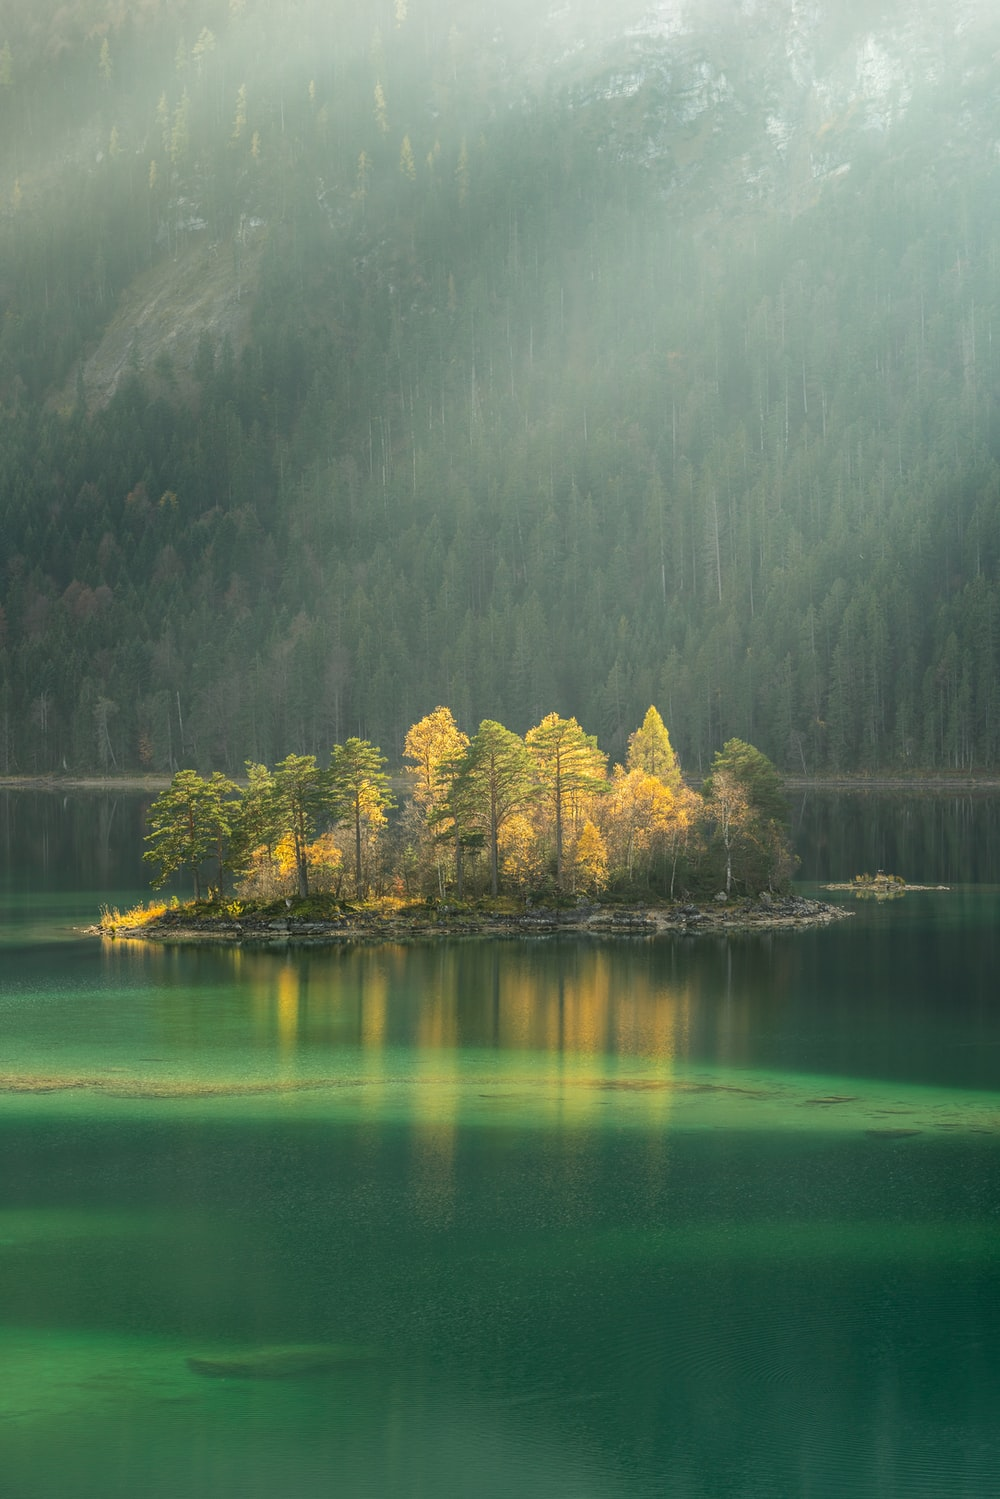 trees surrounded by body water during daytime